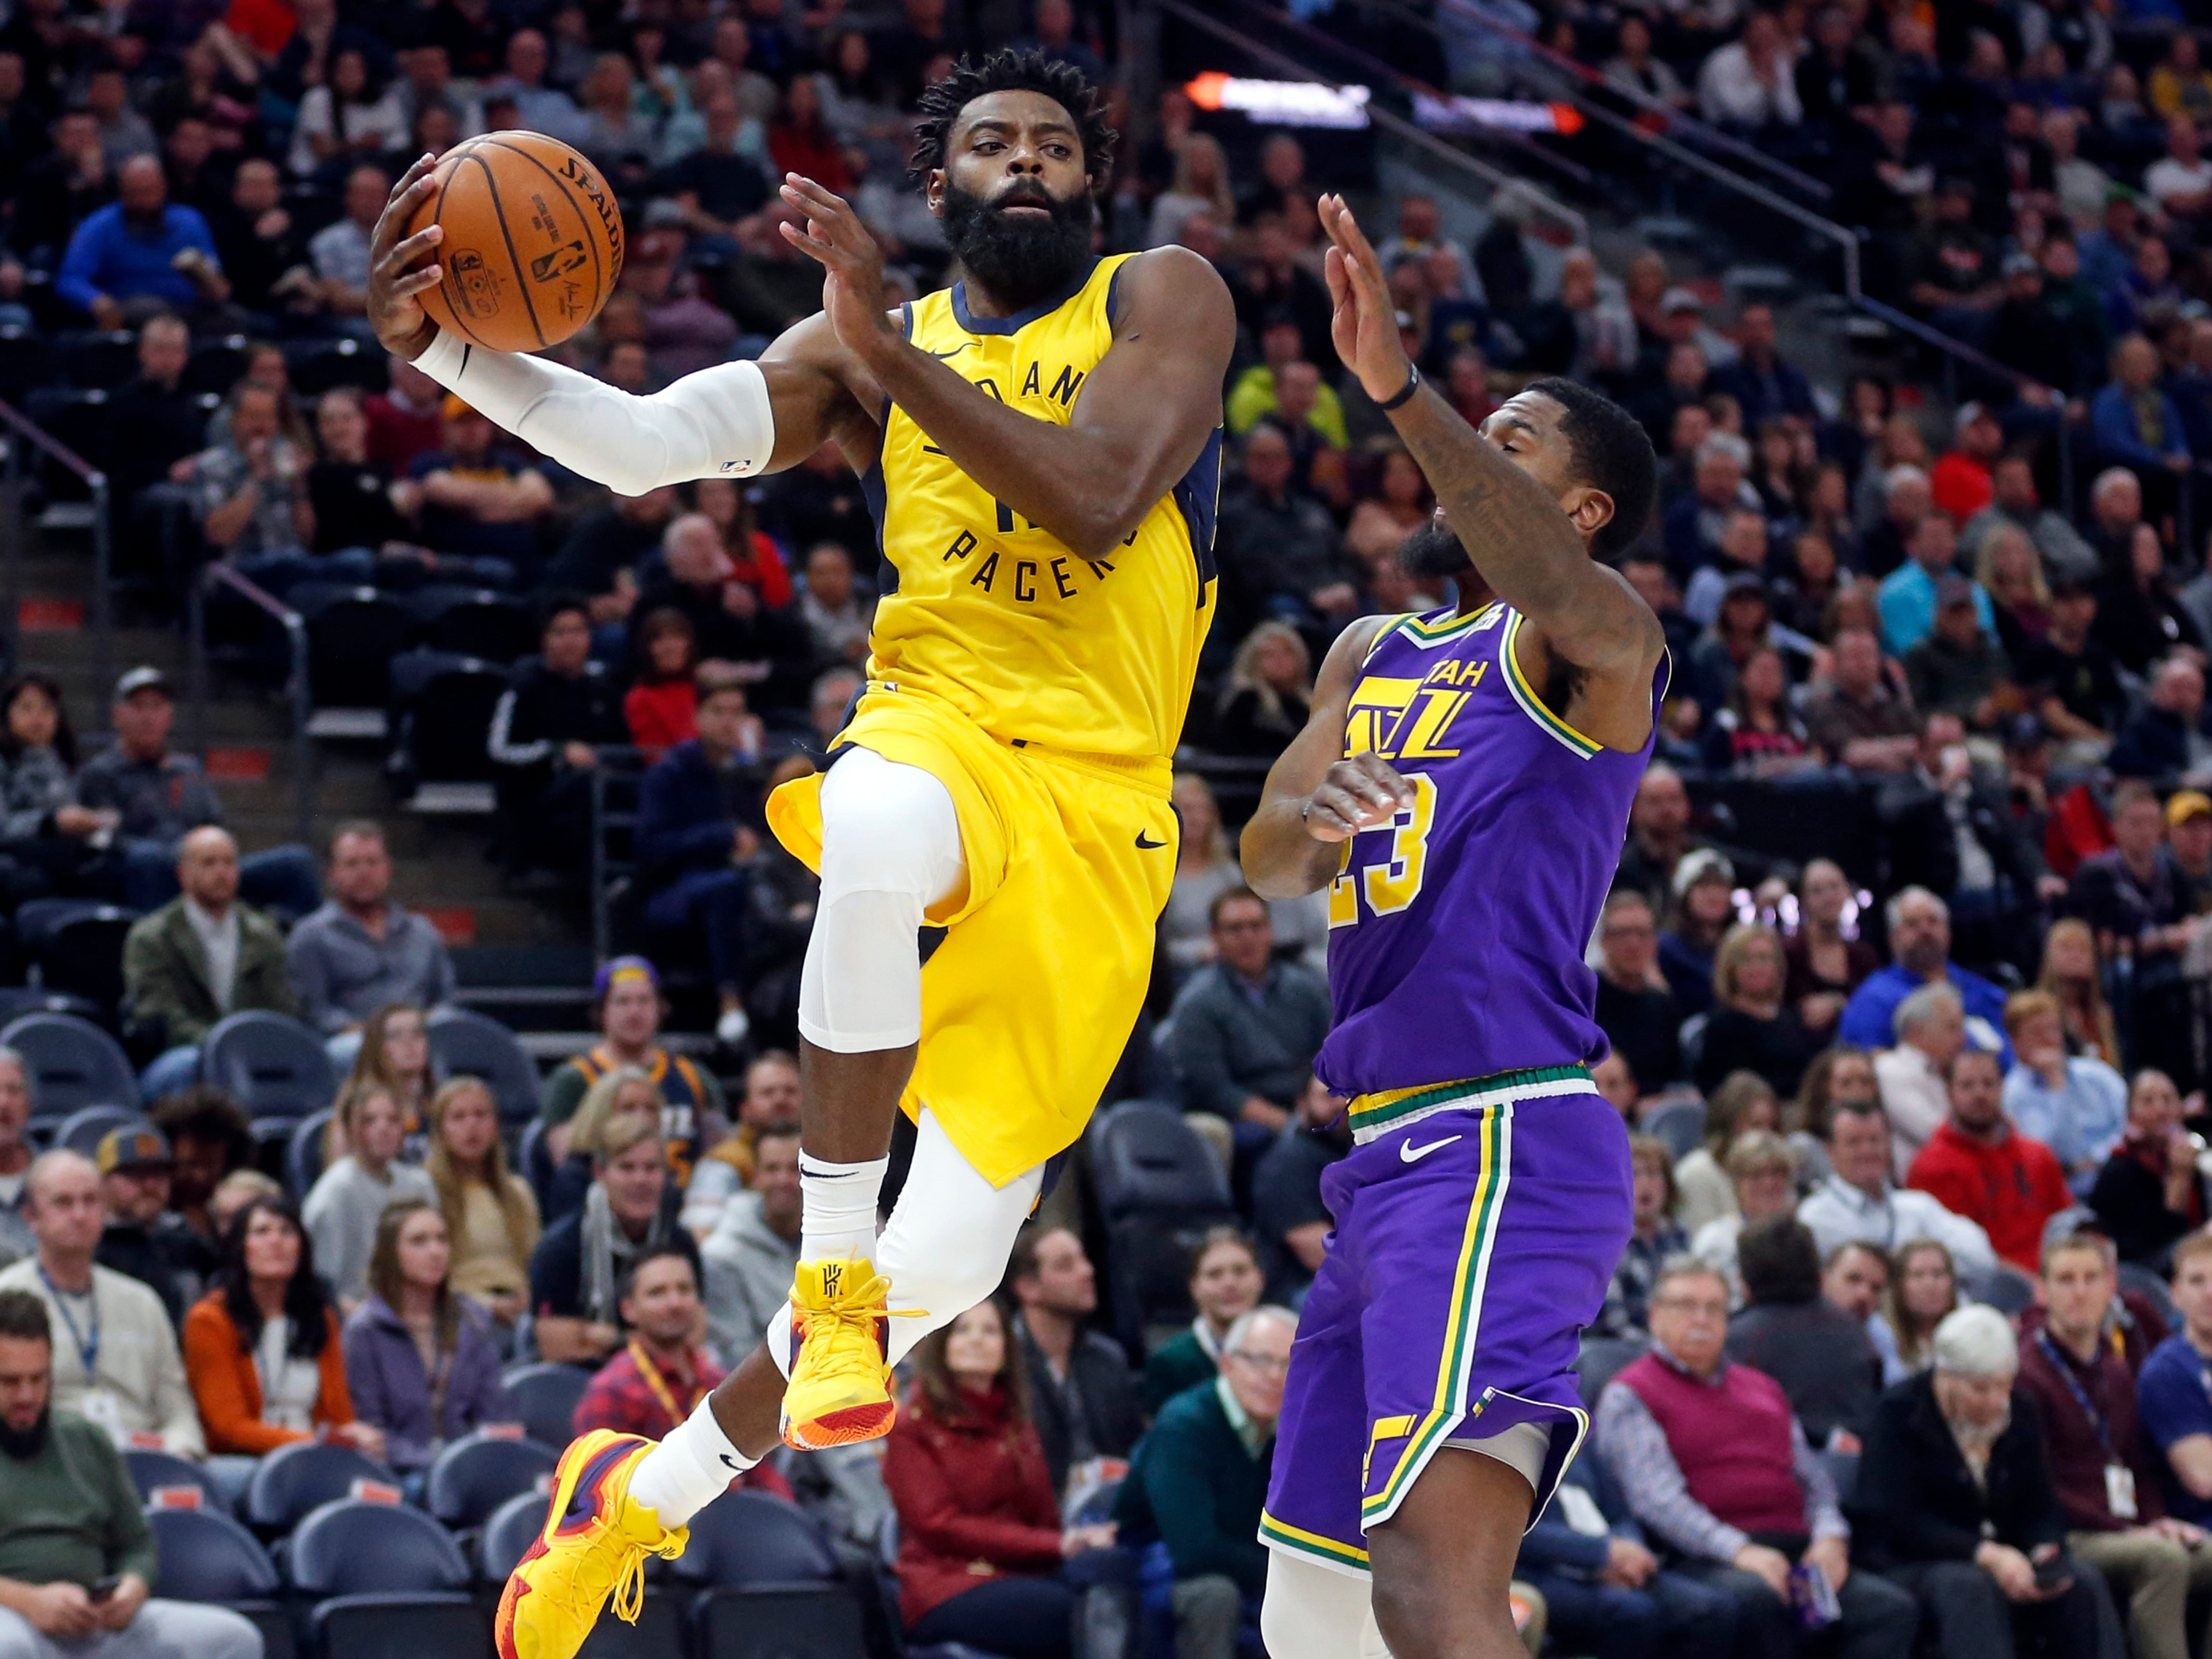 Indiana Pacers guard Tyreke Evans, left, drives to the basket as Utah Jazz forward Royce O'Neale, right, defends in the first half during an NBA basketball game Monday Nov. 26, 2018, in Salt Lake City.